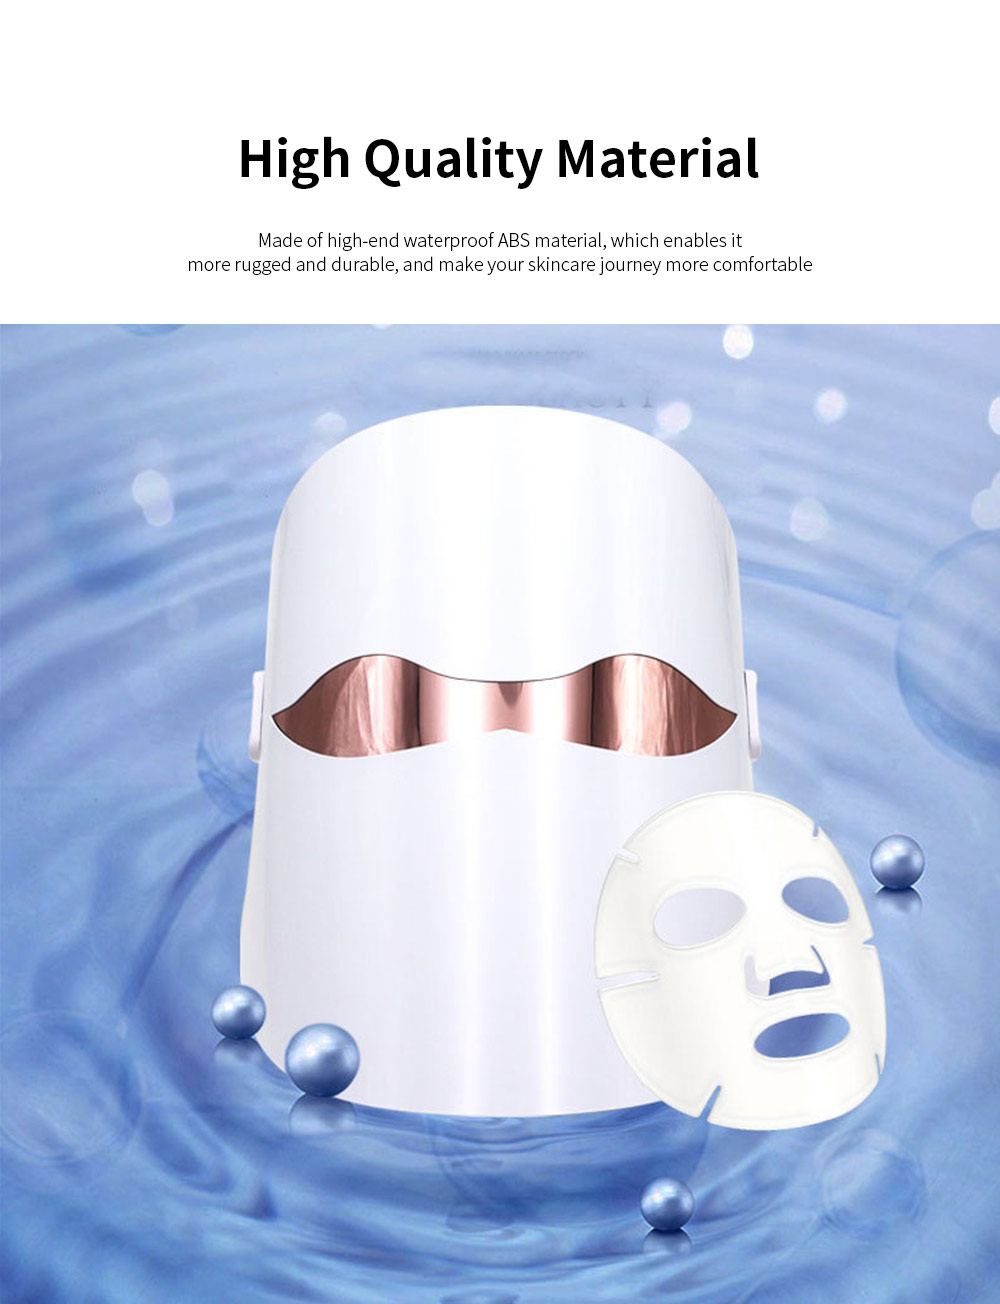 Spectrum Skin Care Mask 32 LED Face Mask with Triple Spectrum Technology for Skin Care Anti Aging Skin Tightening 5